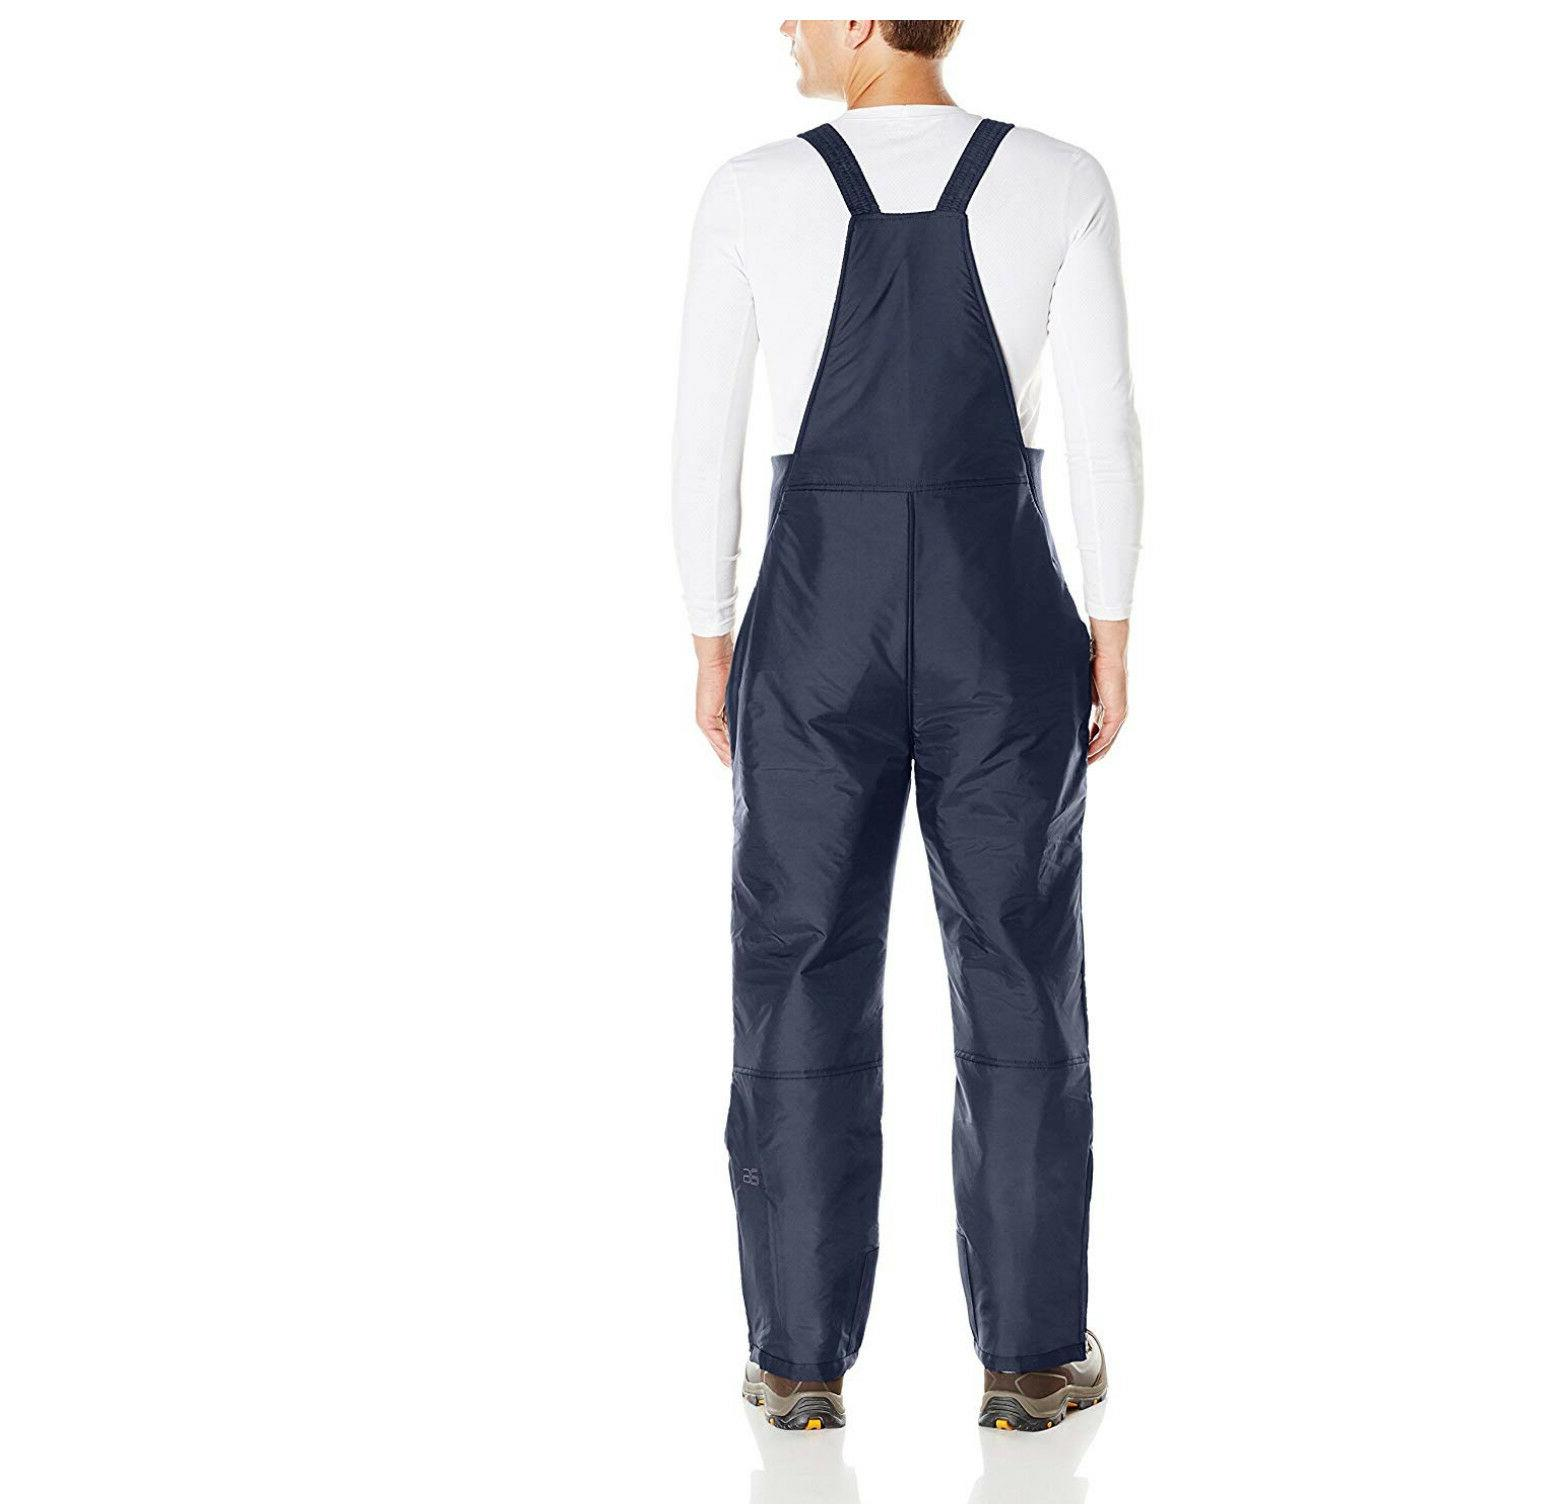 Arctix Essential Overall Pants __ pants